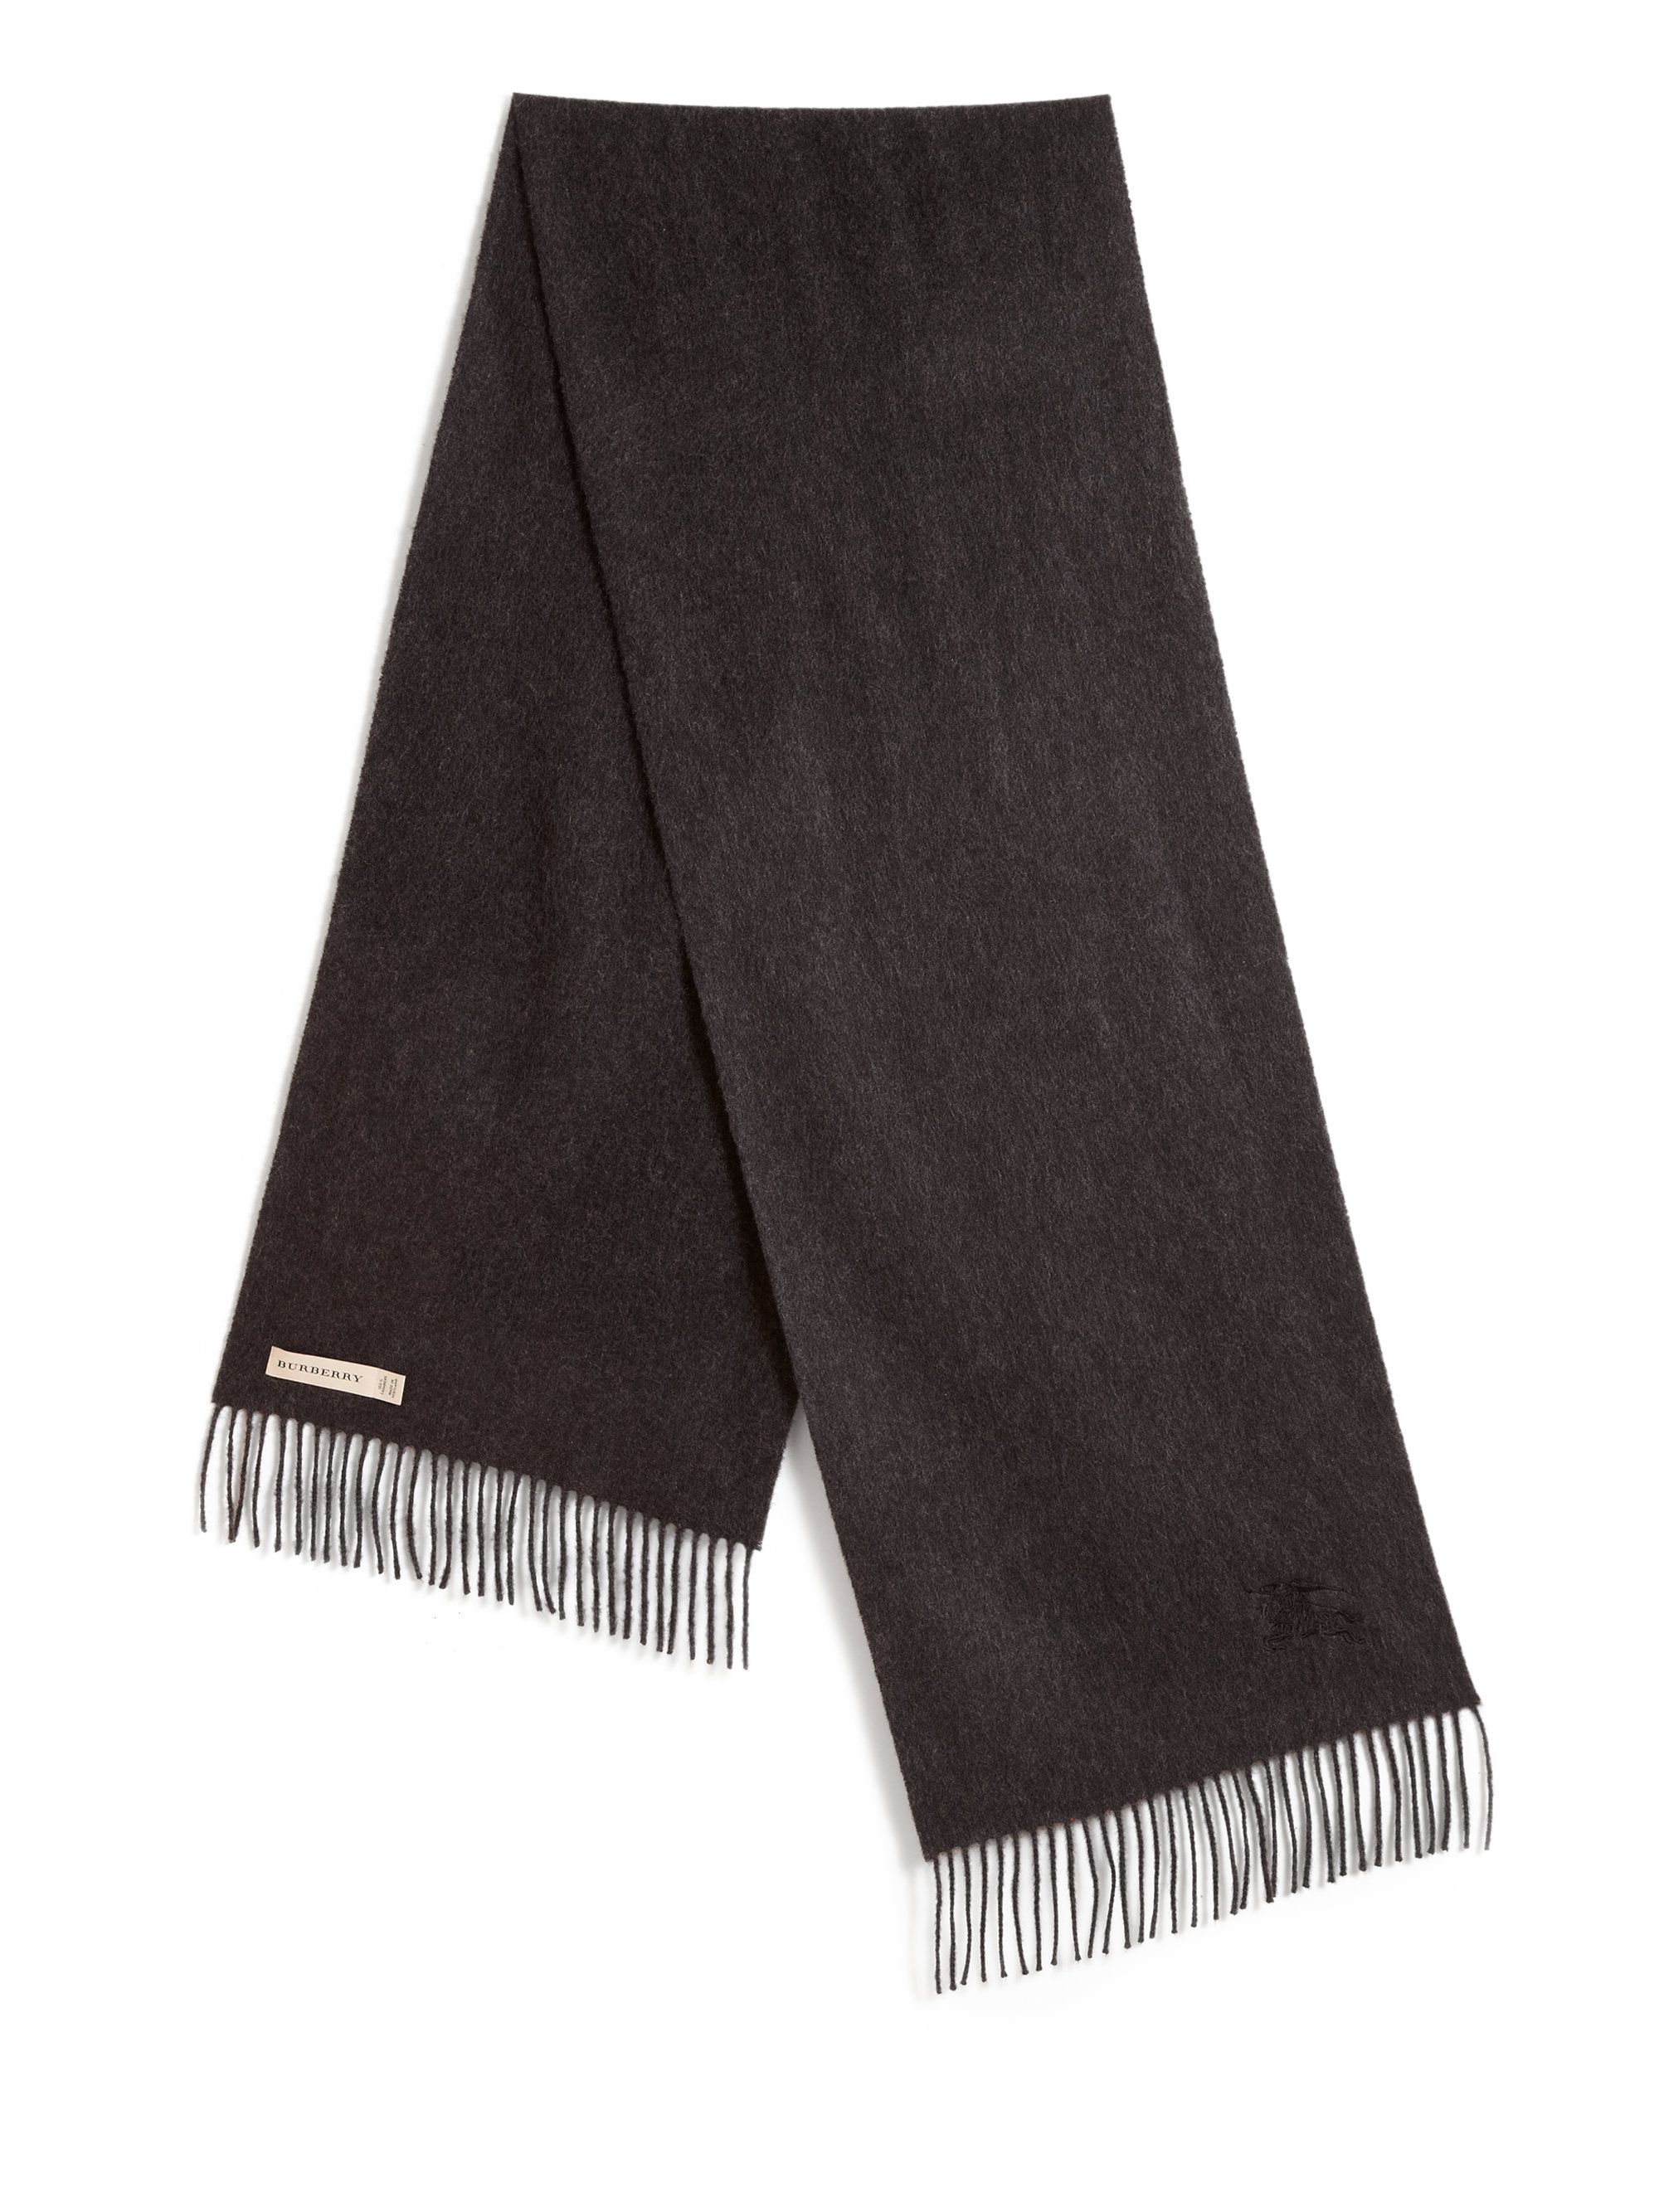 how to clean cashmere scarf